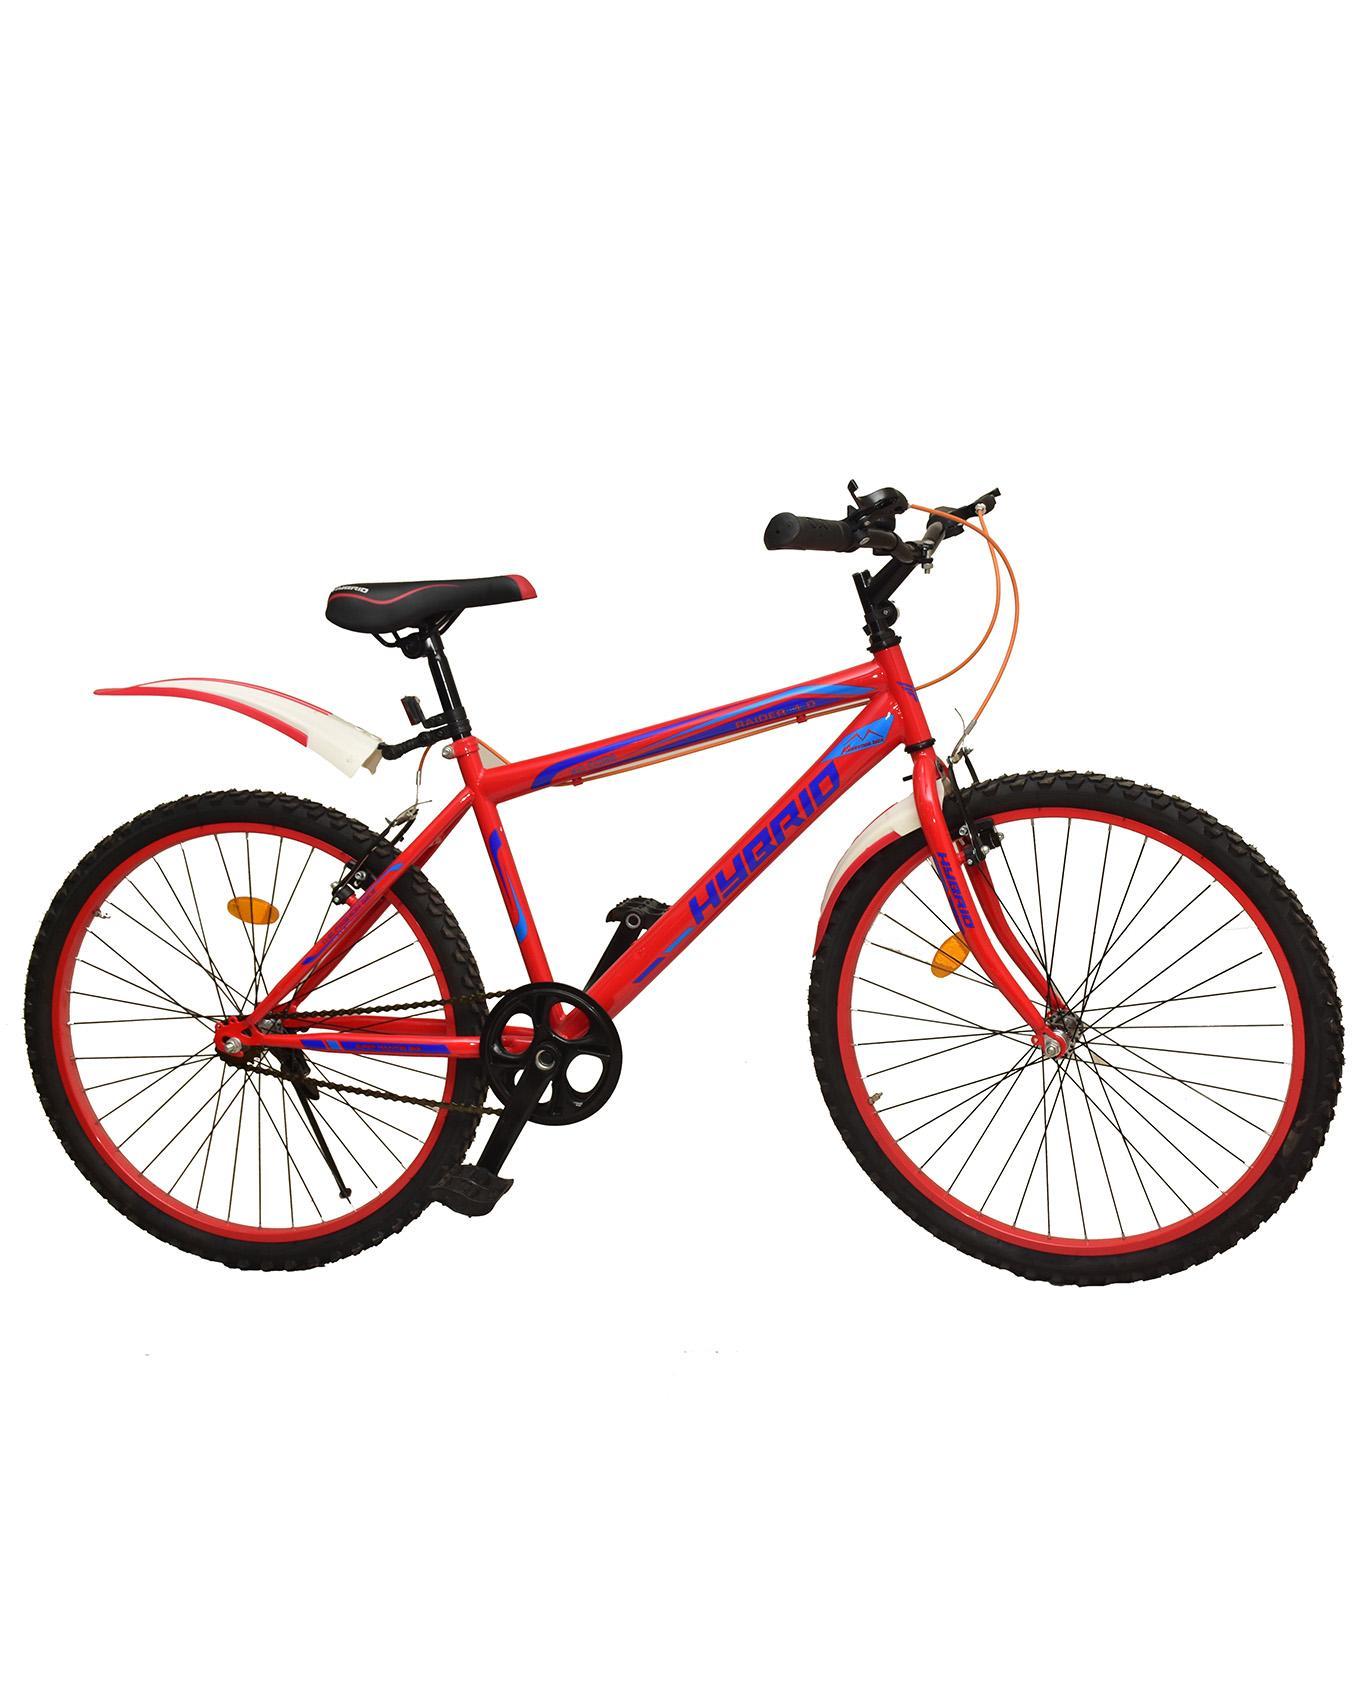 Kenton Mtb Raider - 26 inch Single Speed - Red